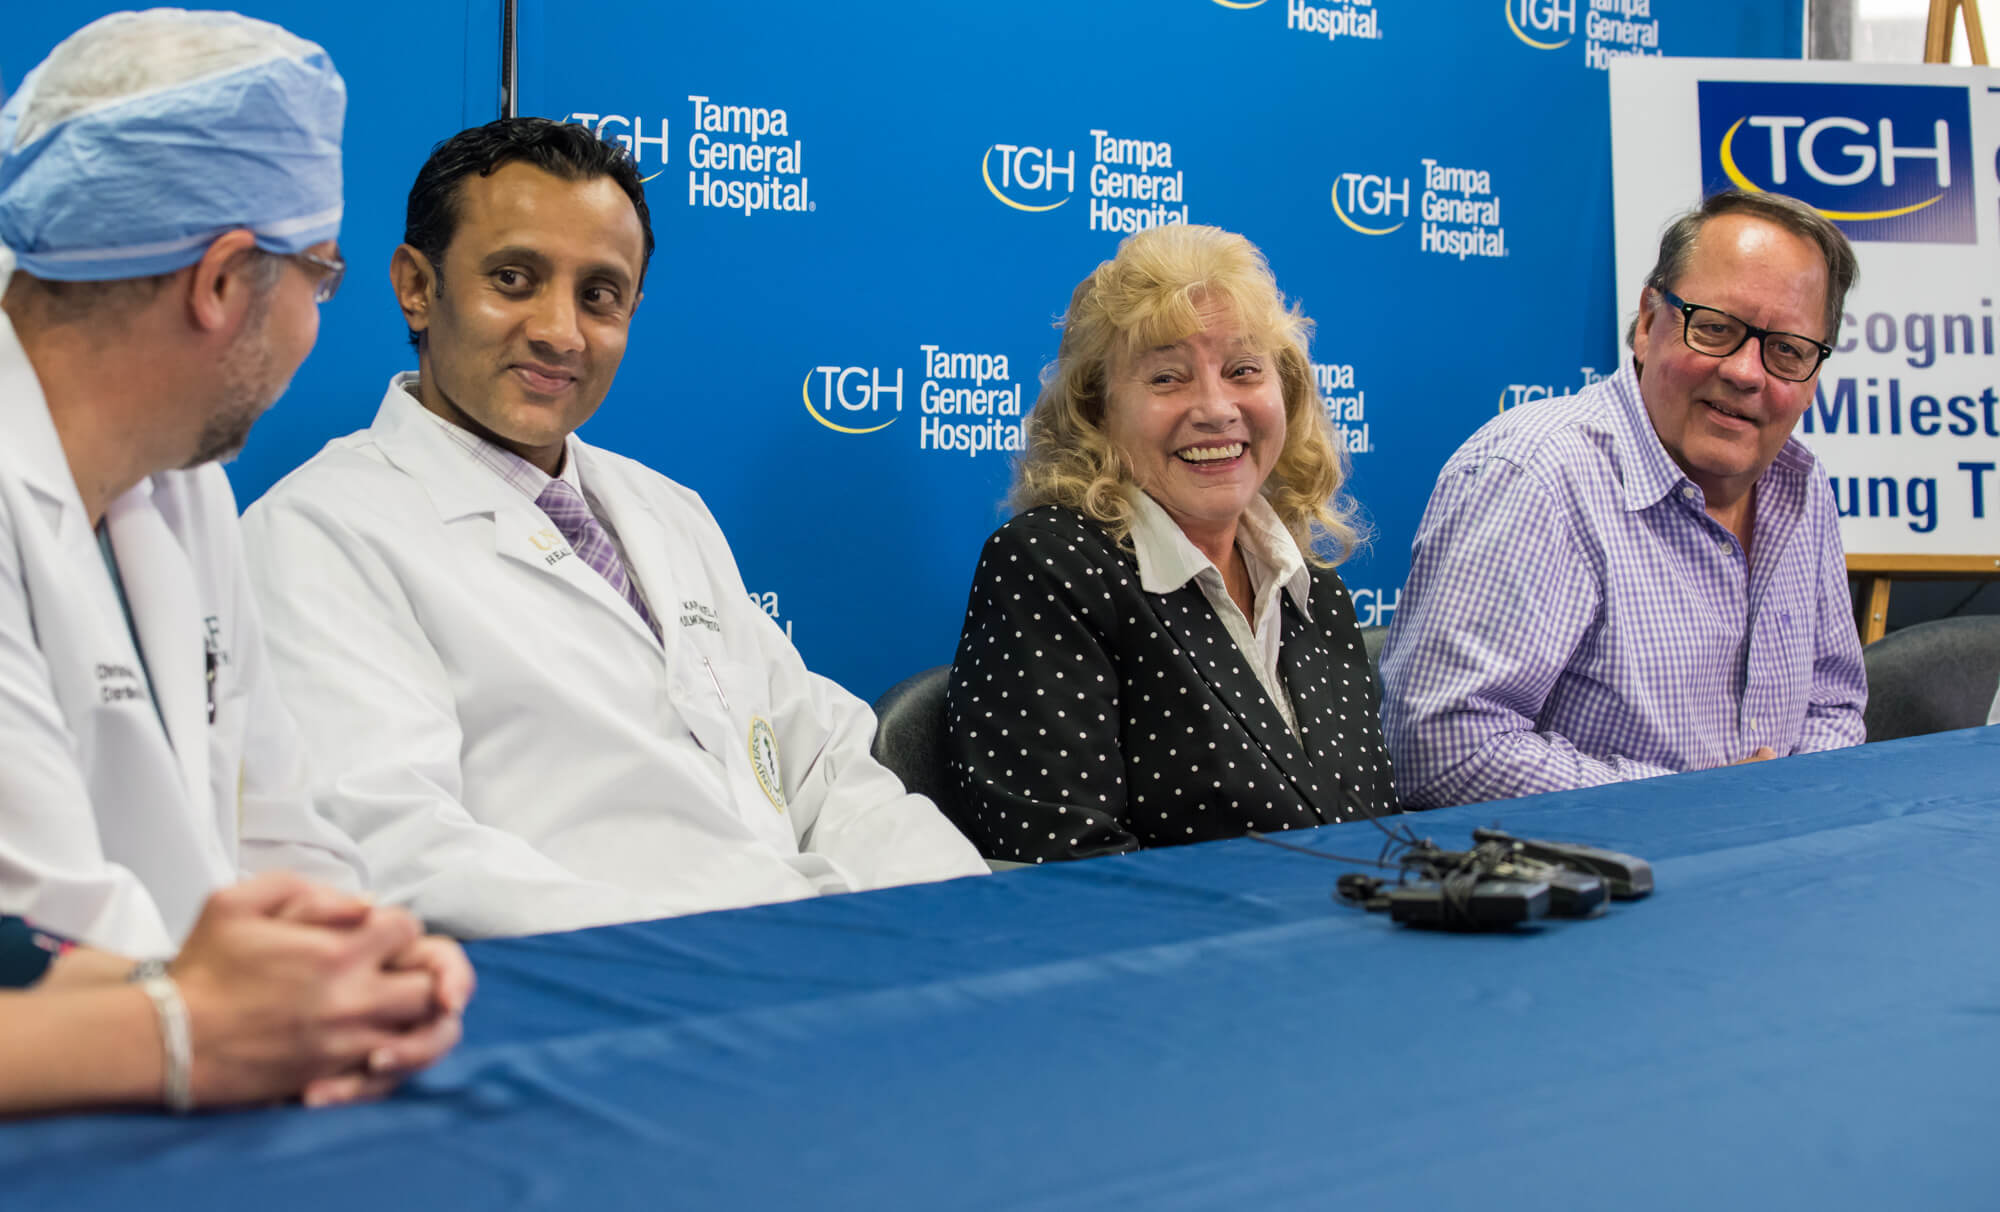 tampa general hospital live stream tgh 500th lung transplant press conference